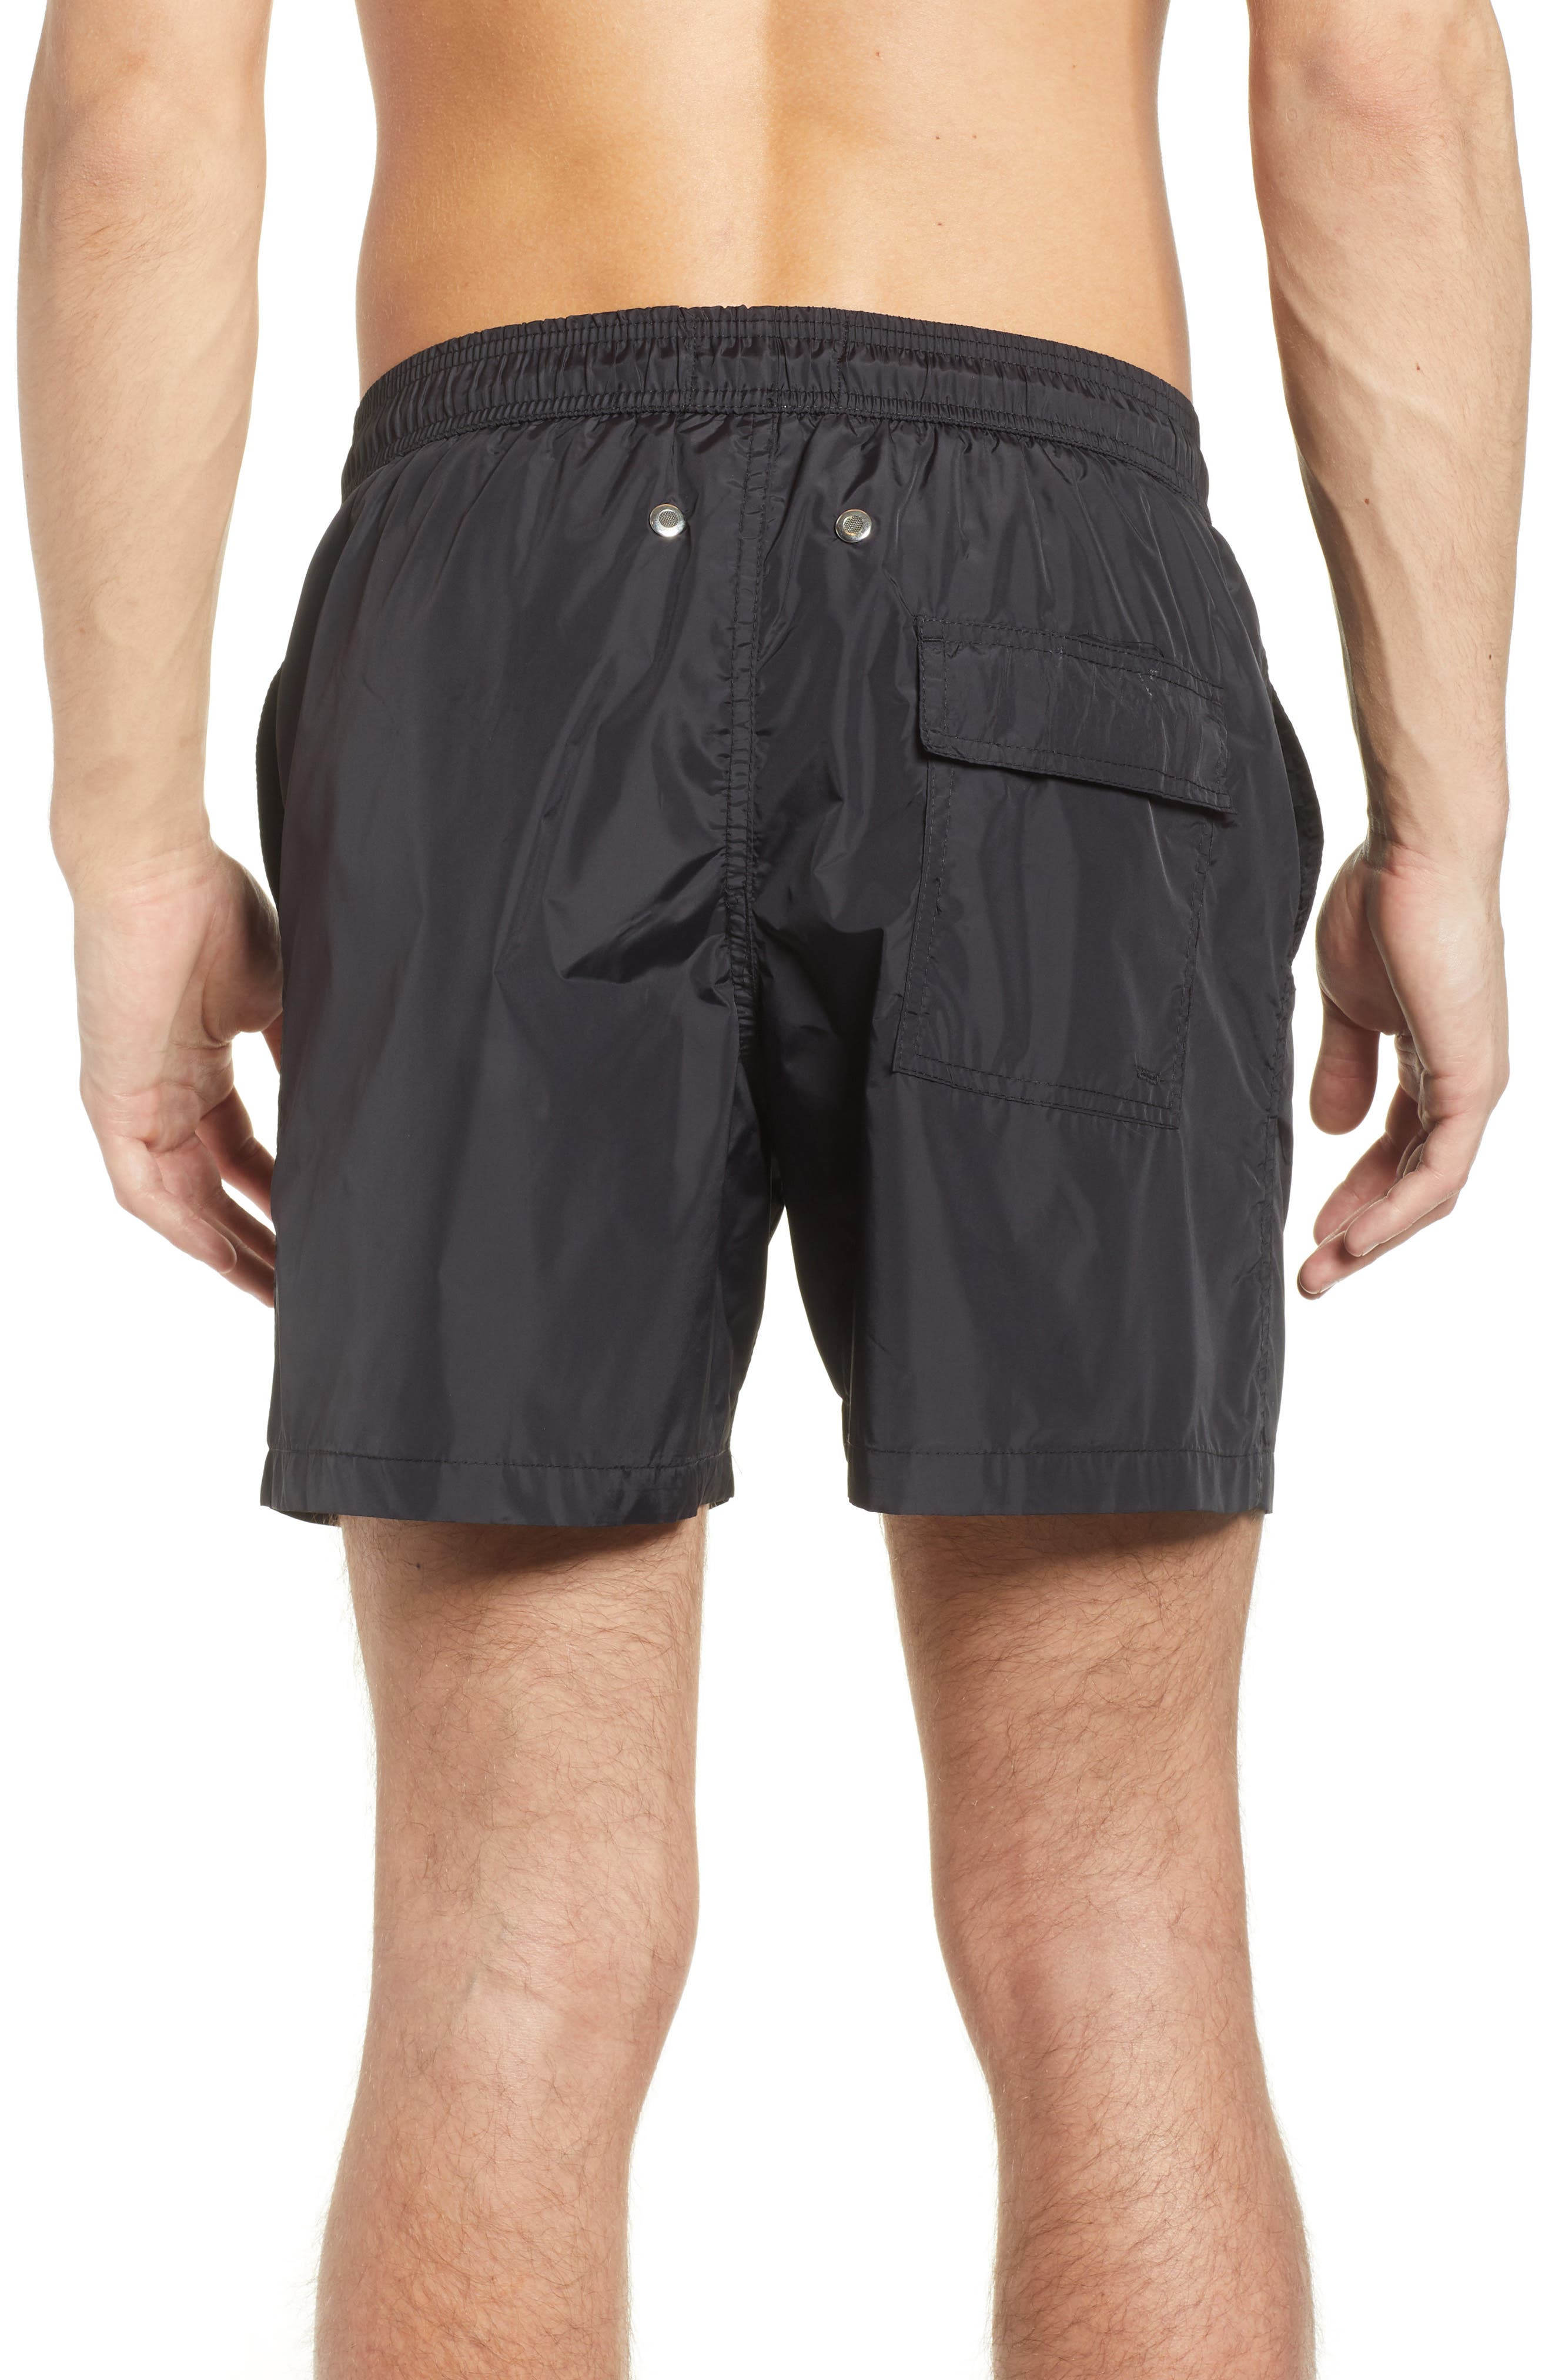 Swim Trunks,                             Alternate thumbnail 2, color,                             Black /Turquoise